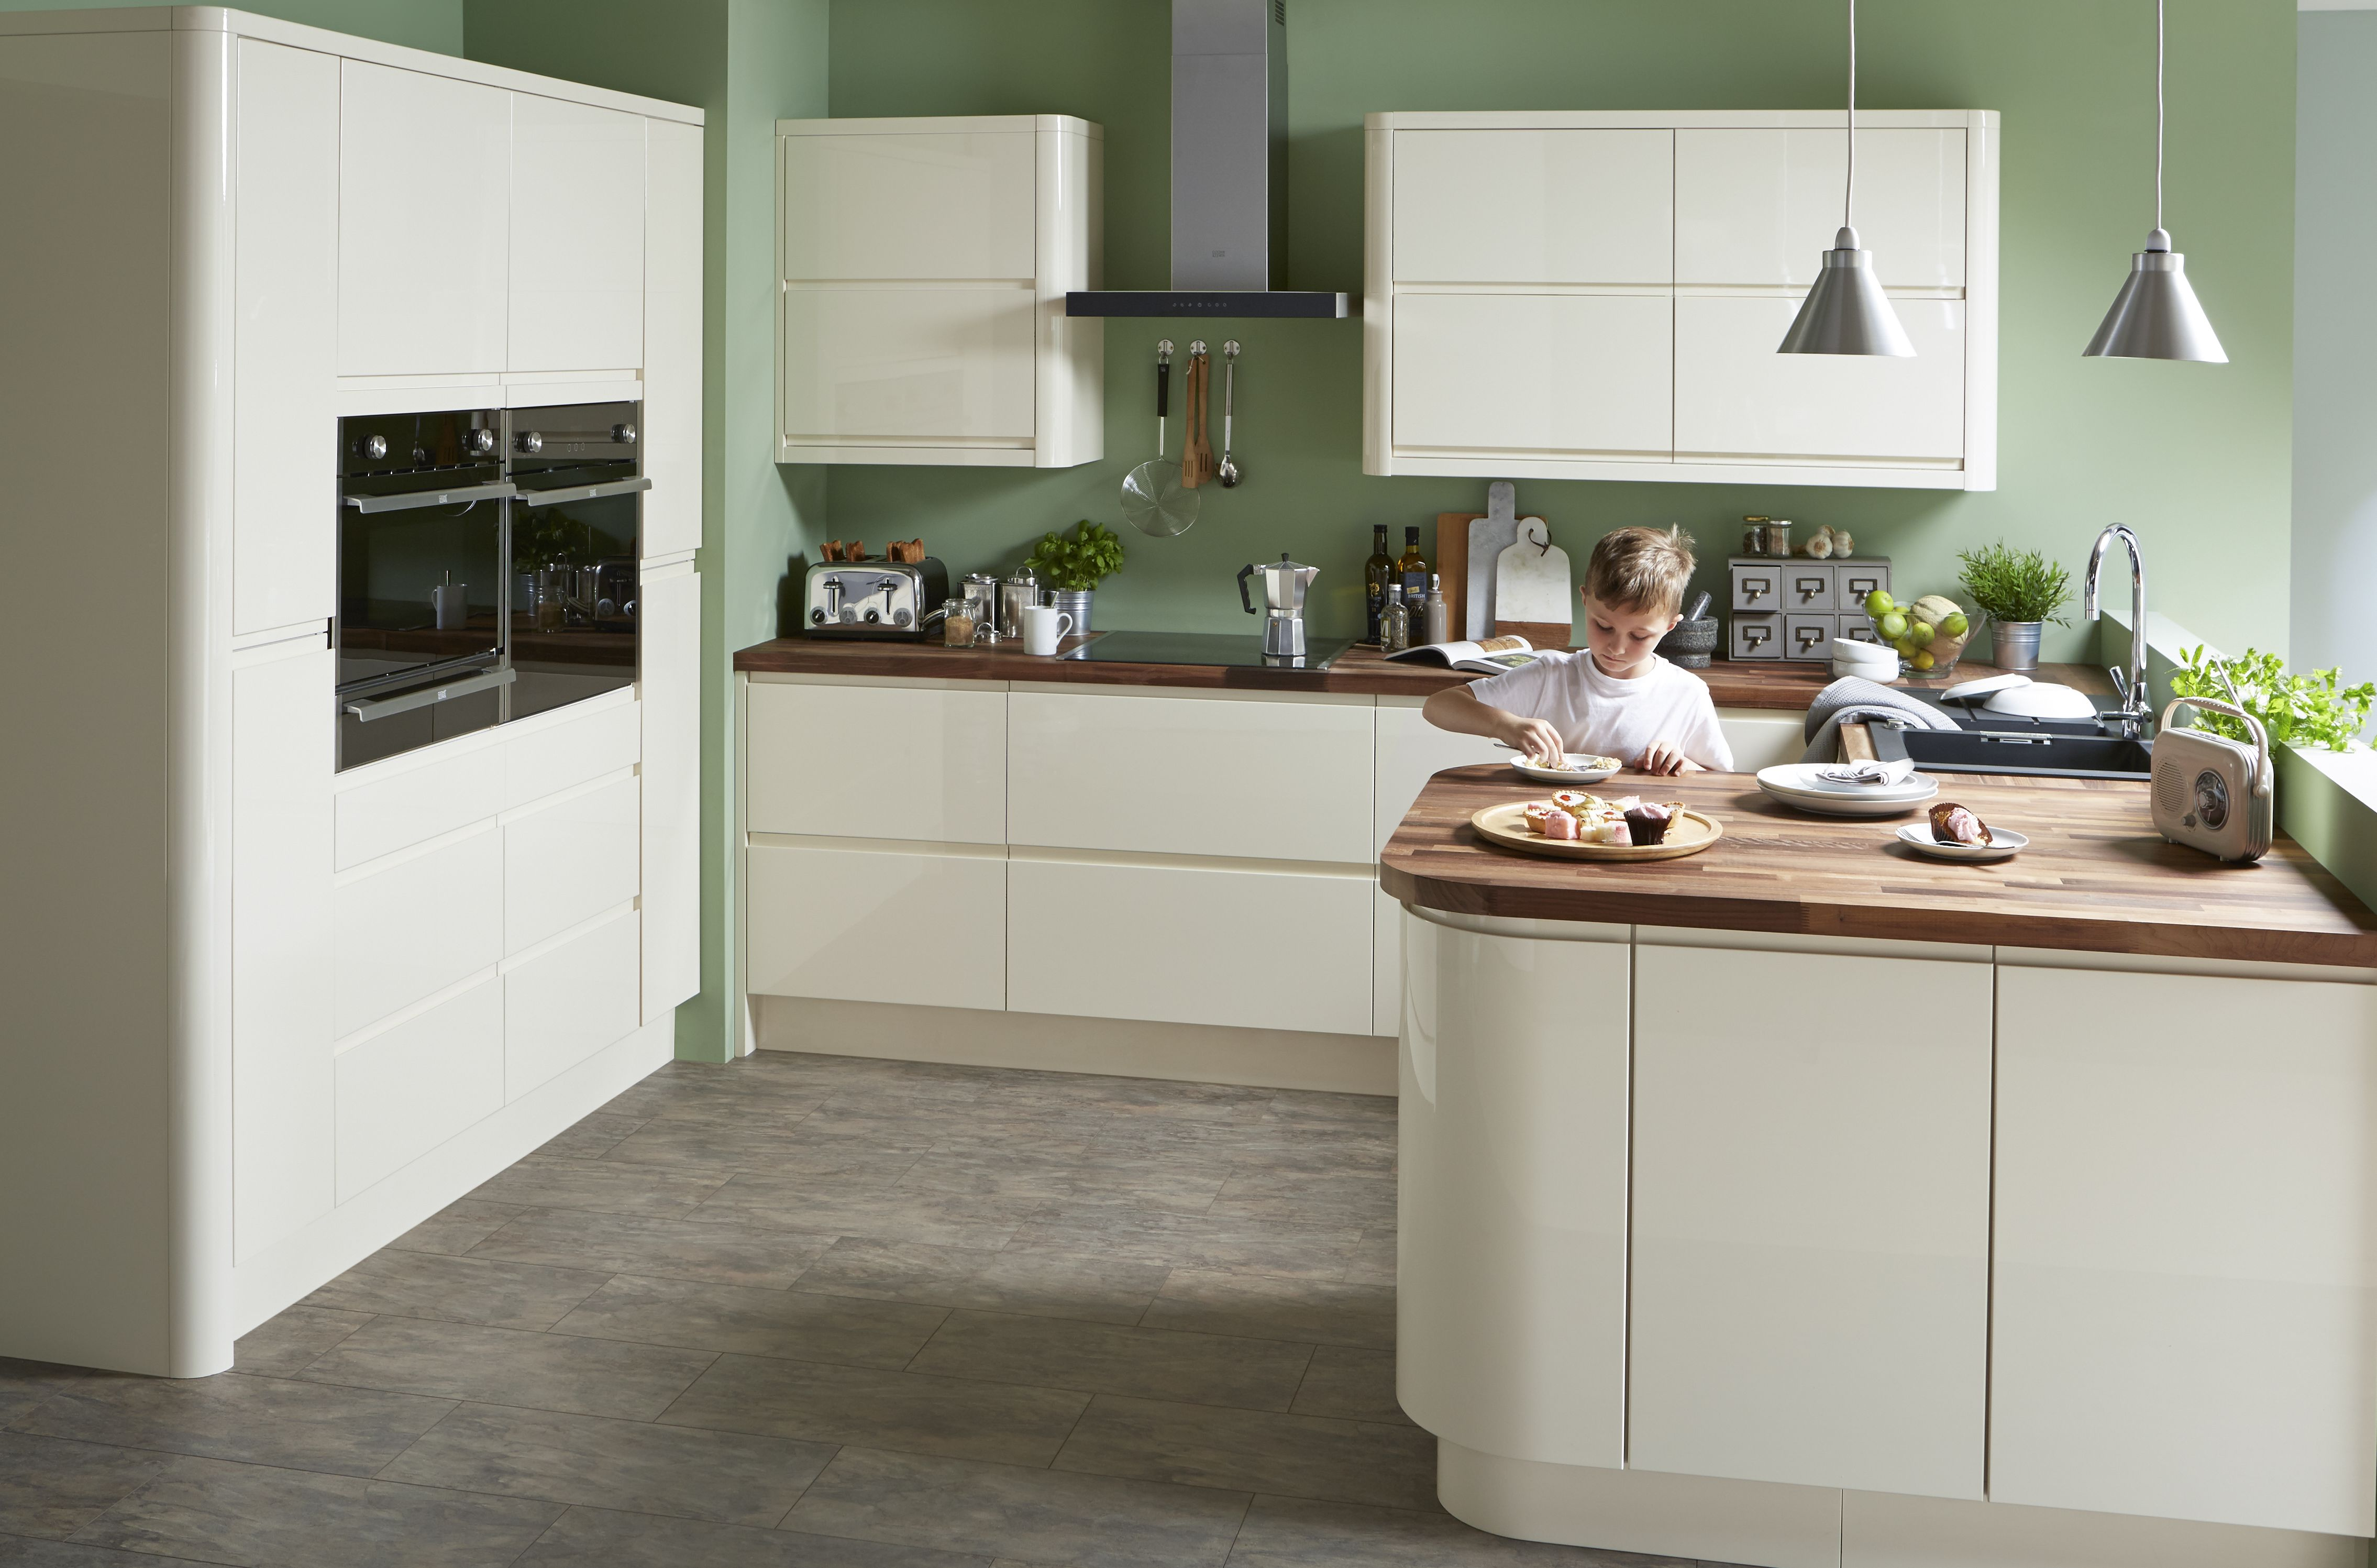 Cream High Gloss Vinyl Kitchen Cabinet Doors: Cooke & Lewis Appleby High Gloss Cream With Integrated